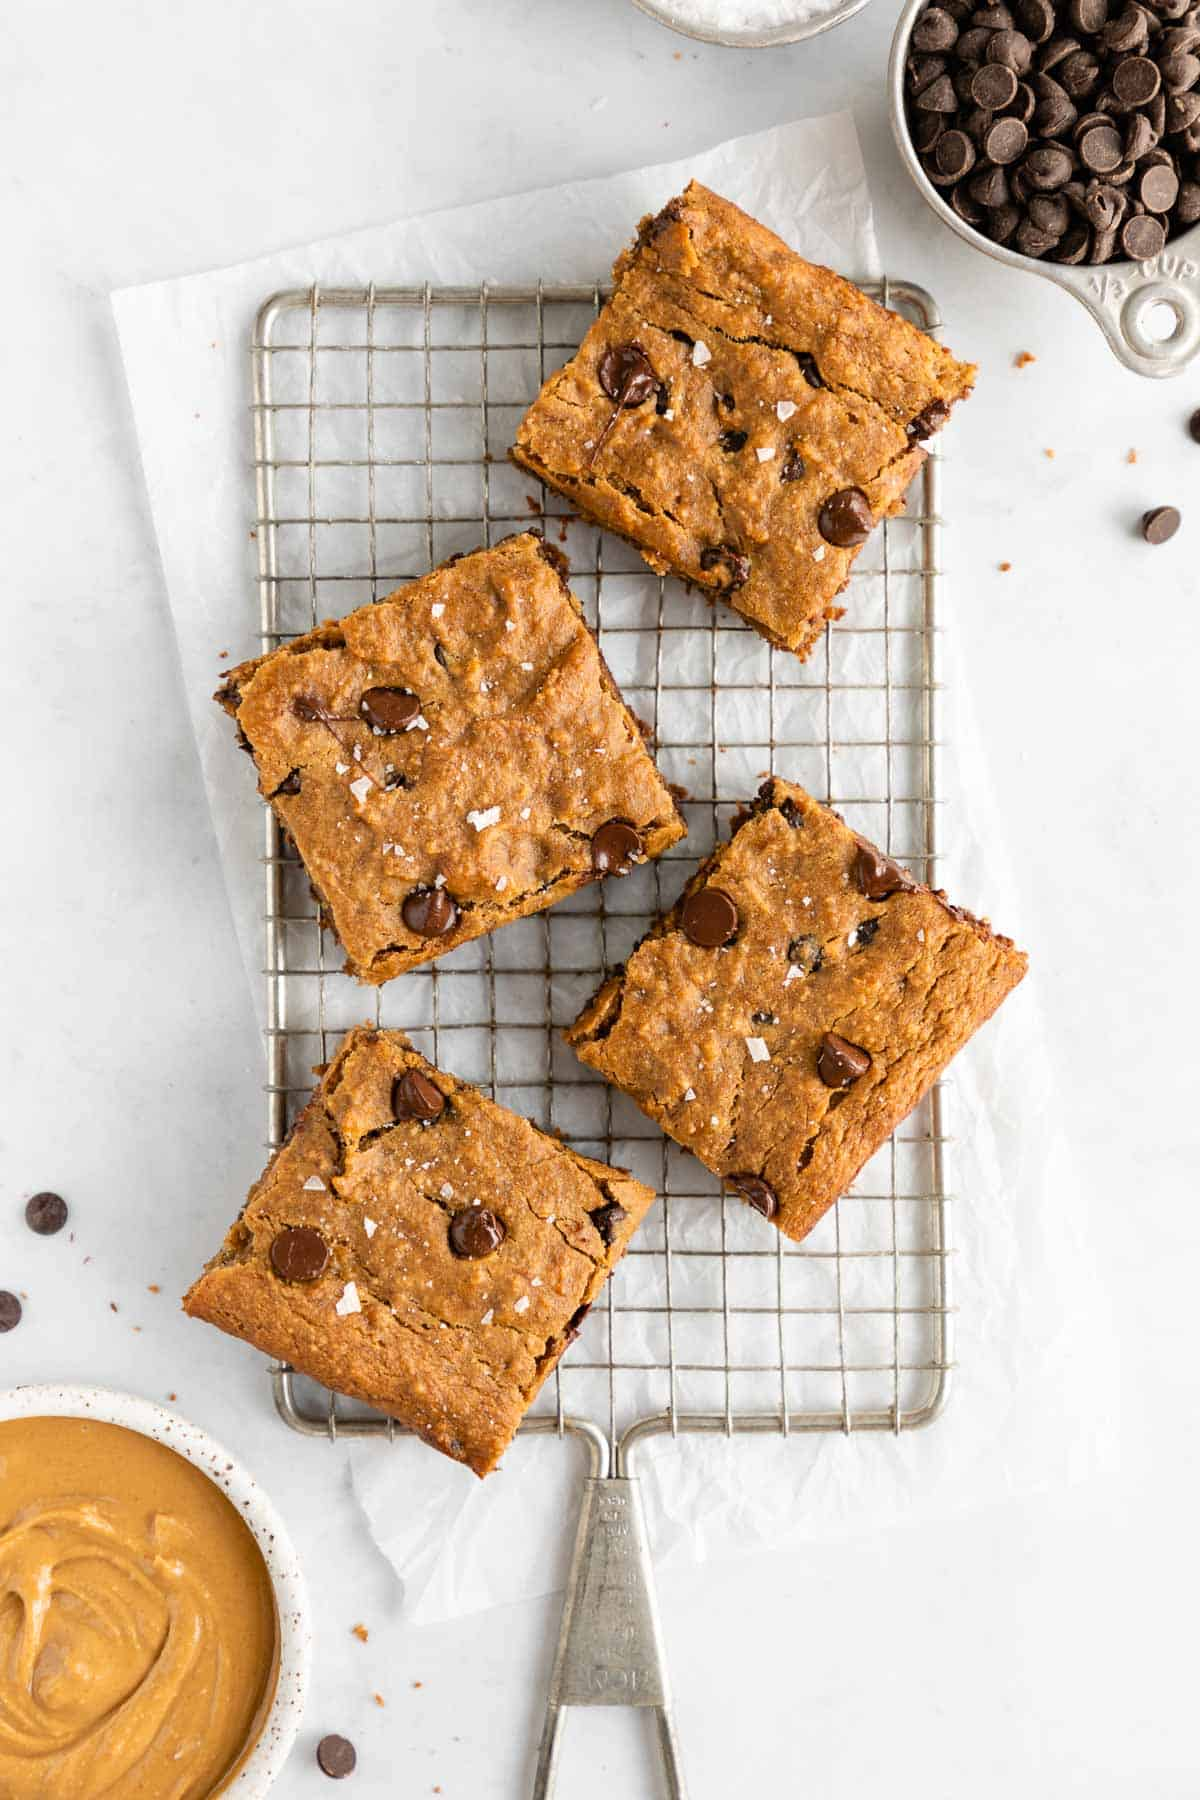 chocolate chip banana blondie bar on top of a square white plate surrounded by chocolate chips, almond milk, peanut butter, and a wooden fork